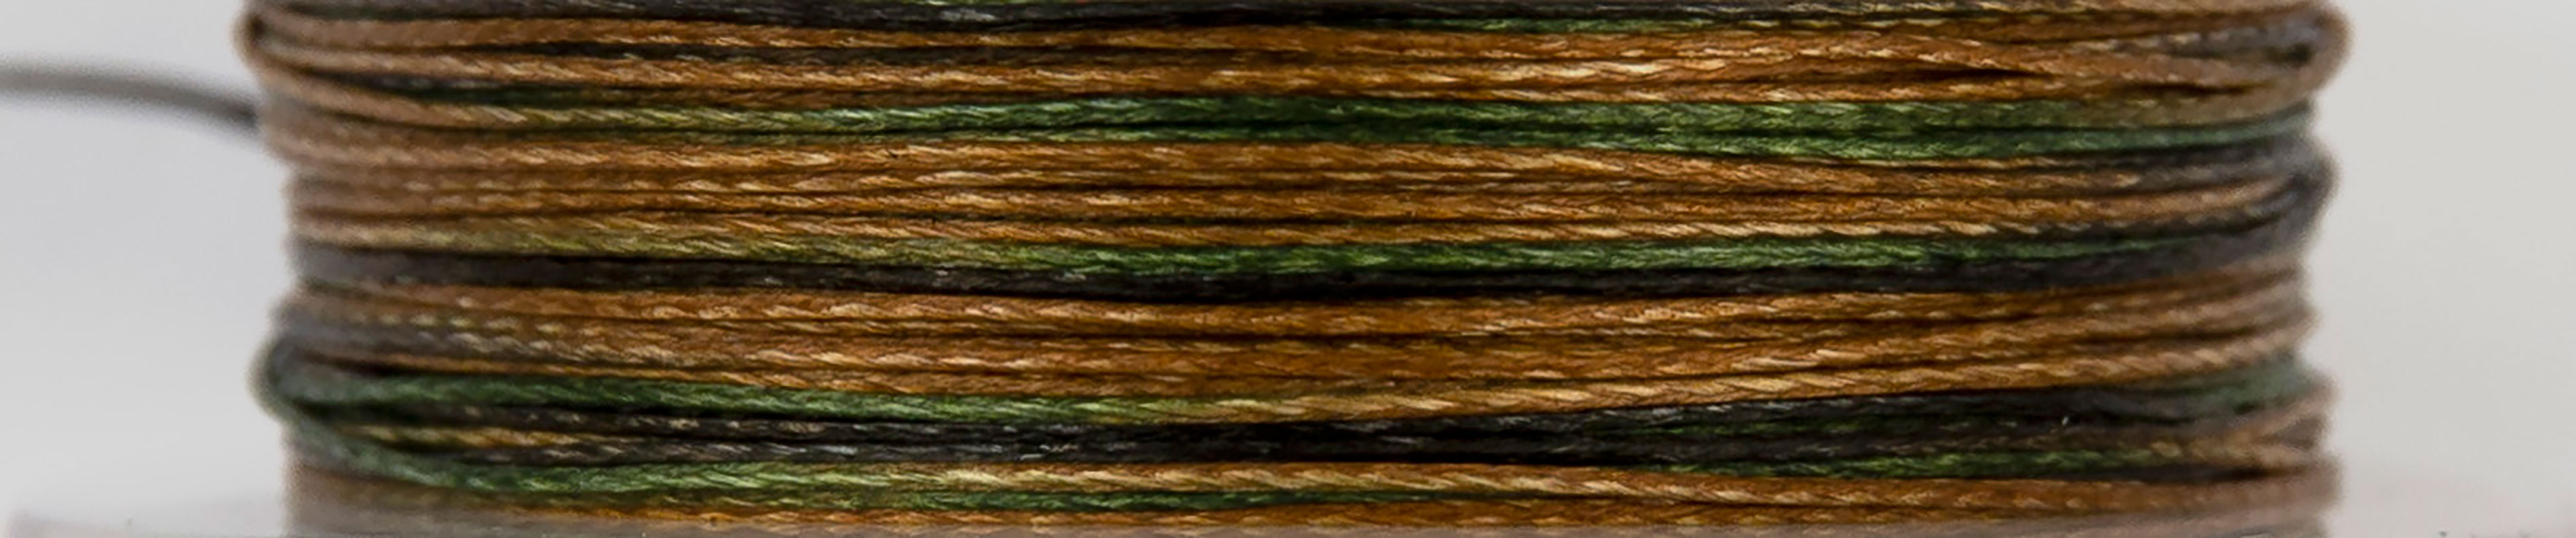 edges-reflex-camo-soft-sinking-braid_camo_25lb_20m_cu01gif